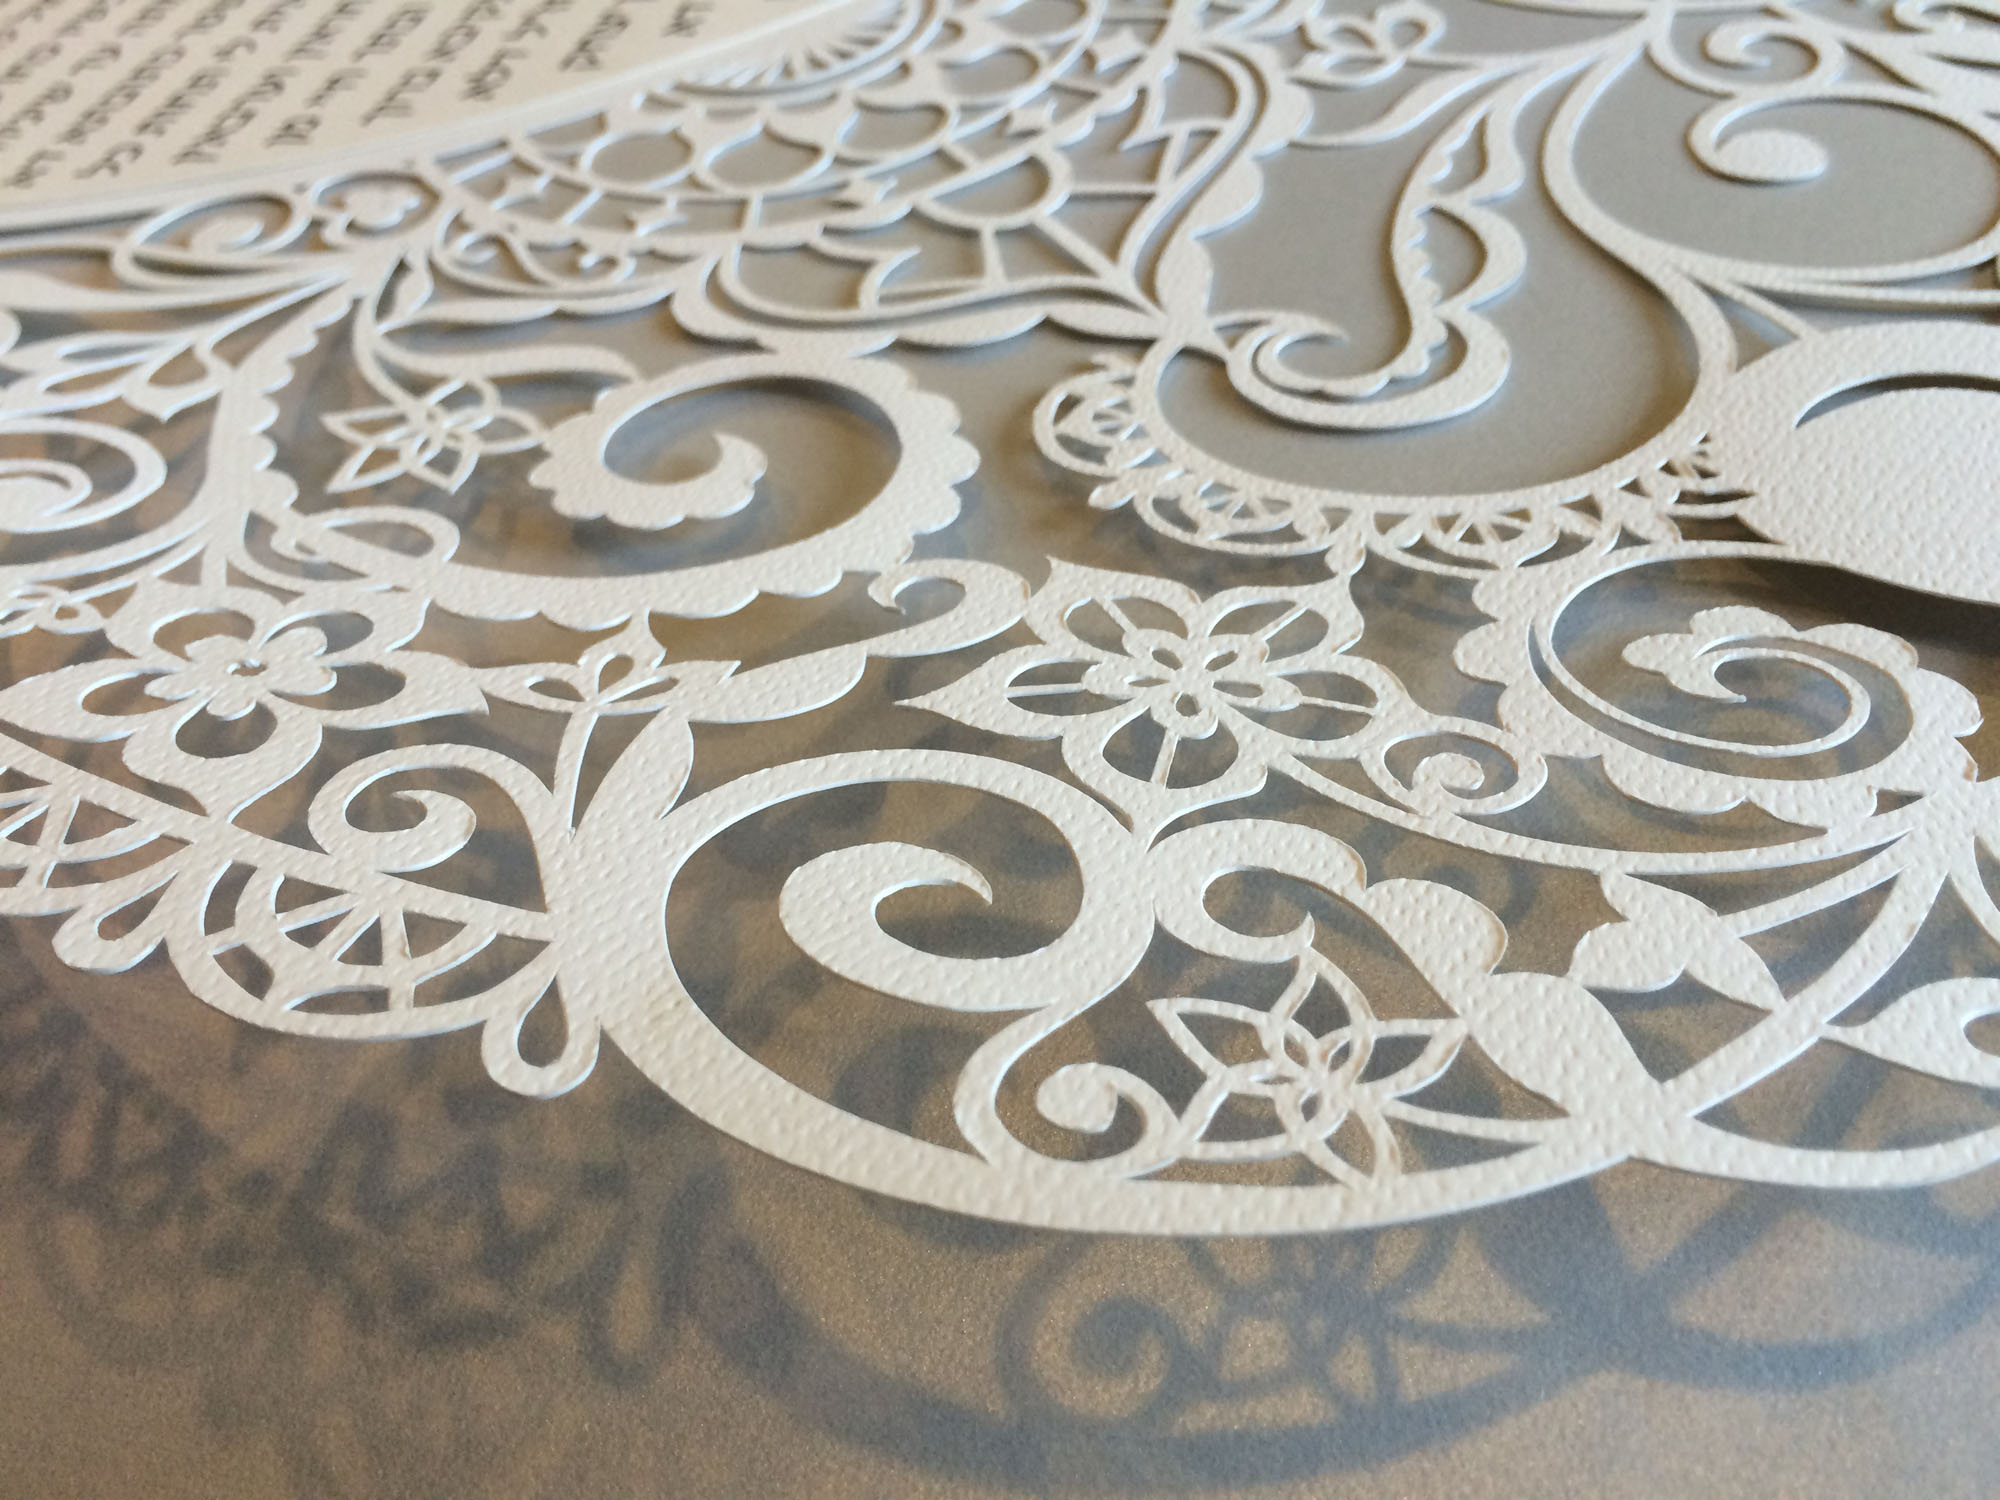 Custom papercut, Semi-Custom, Lasercut – What's the Difference?